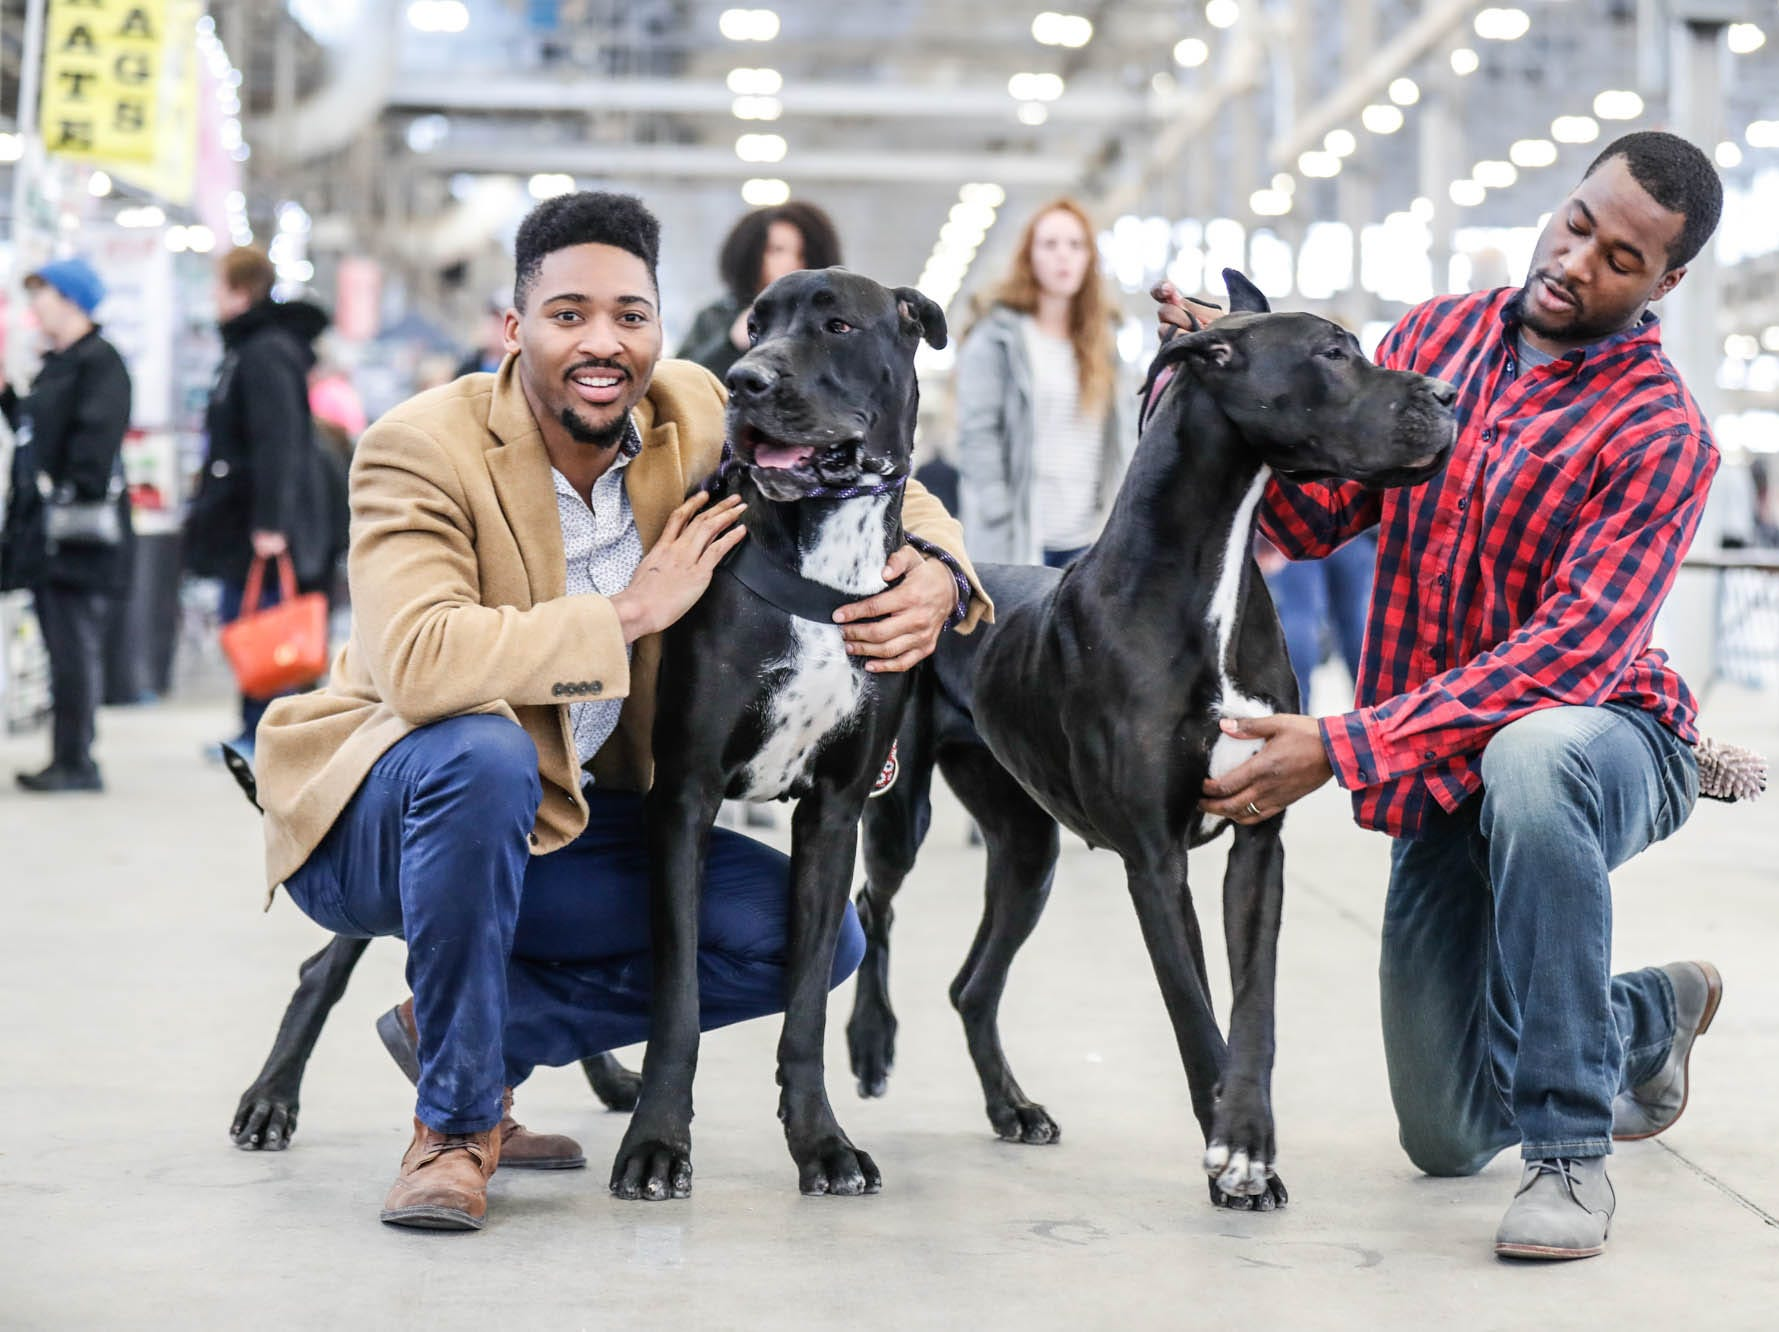 Cameron Hollins, left, and Rich White, of Divine Danes, pose for a photo with their Great Danes, Fia, left, and award winner Poppy, during the Indy Winter Classic All Breed Dog Show, held at the Indiana State Fairgrounds on Sunday, Feb. 10, 2019.